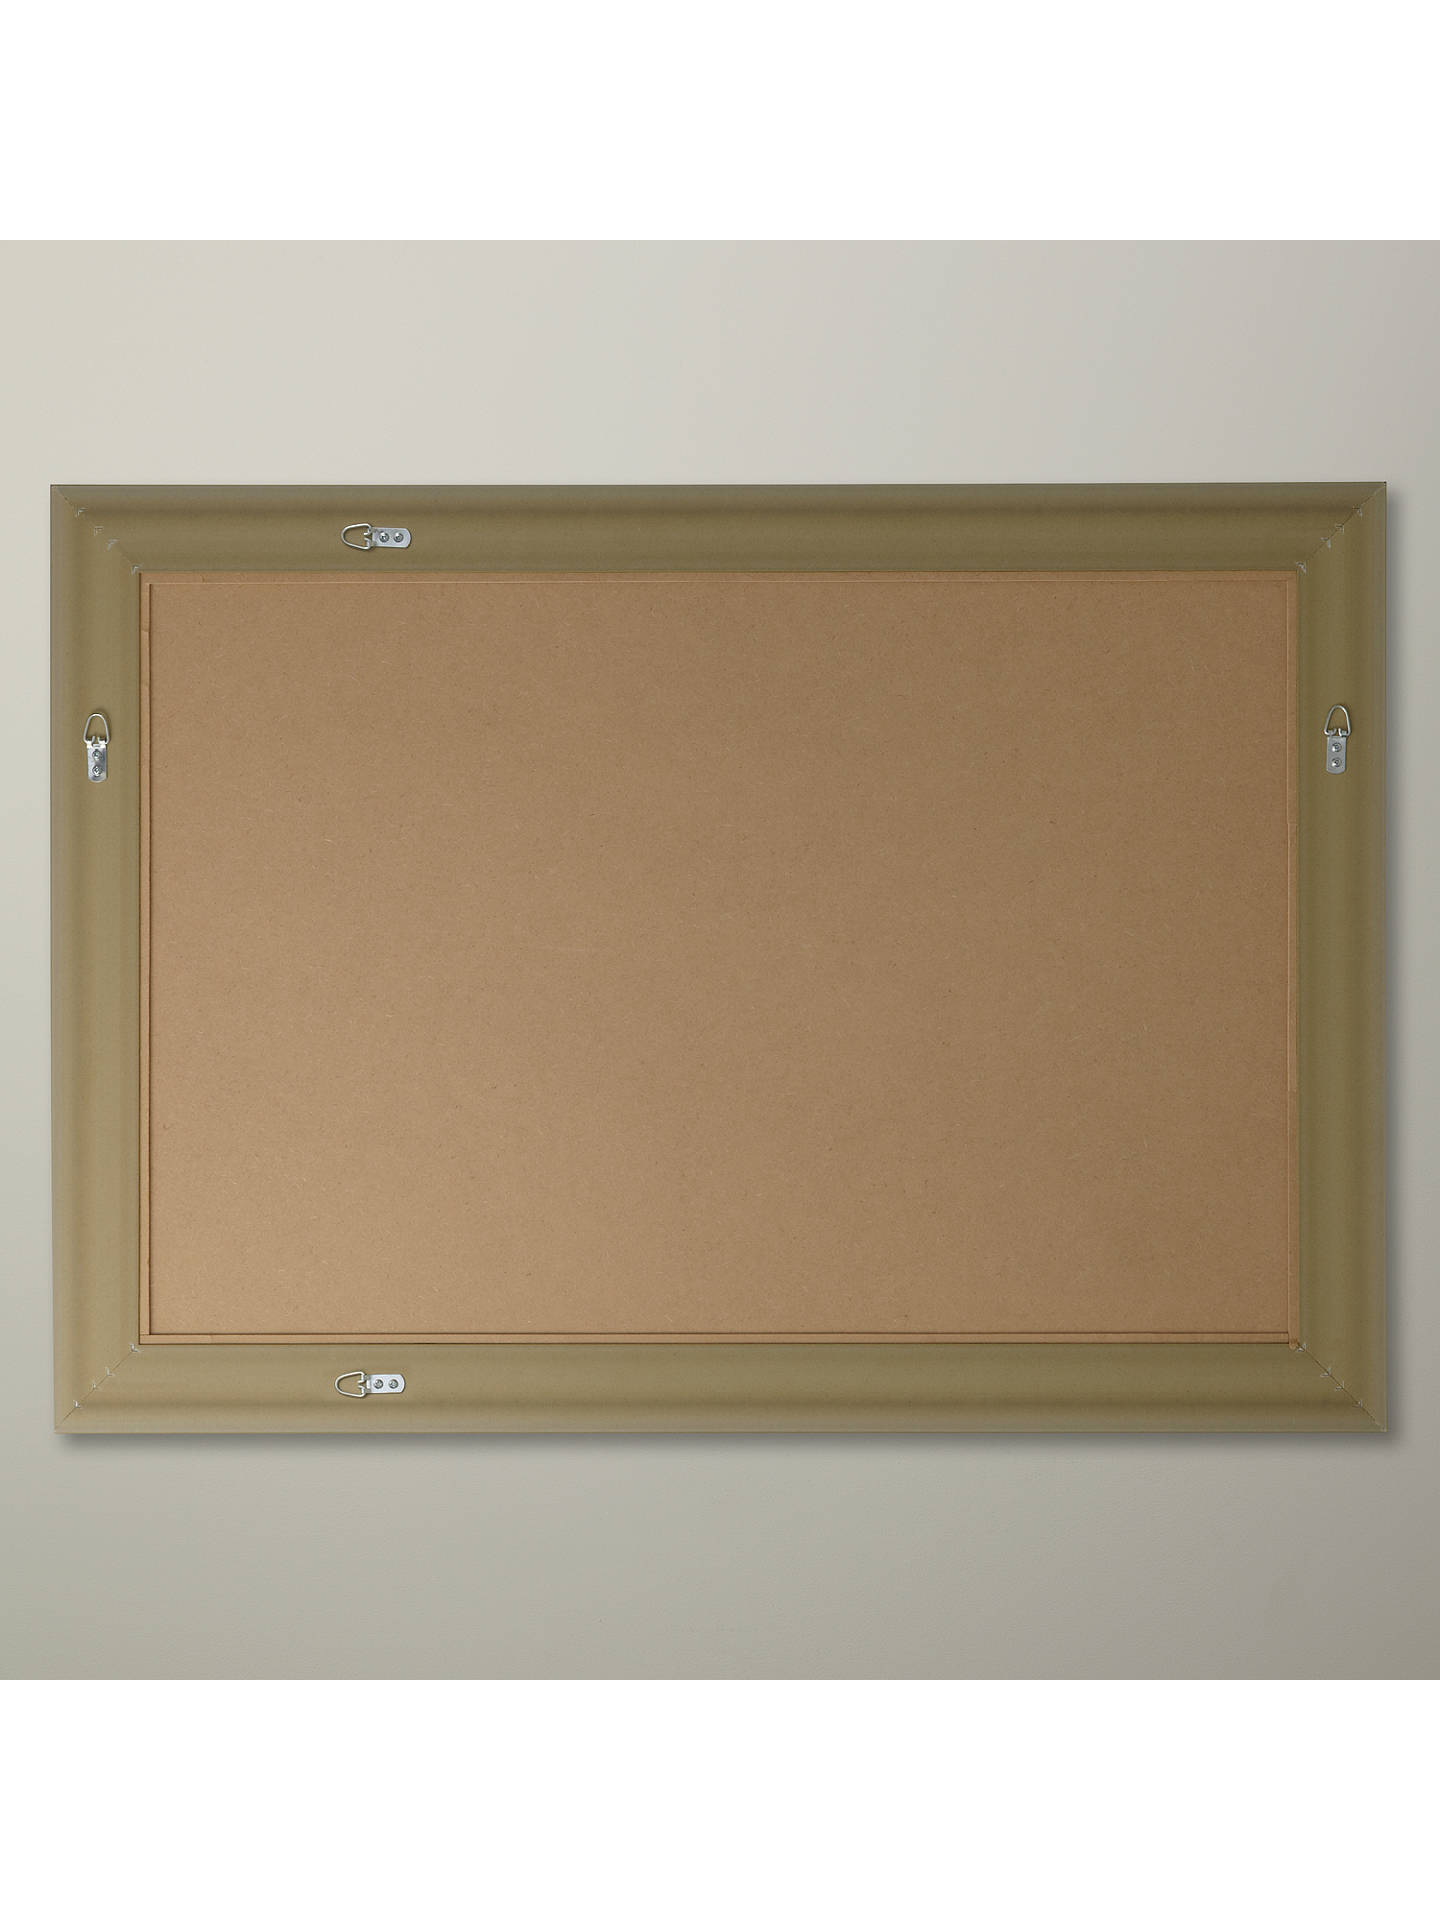 BuyJohn Lewis & Partners Marni Mirror, Champagne Silver, 91 x 66cm Online at johnlewis.com